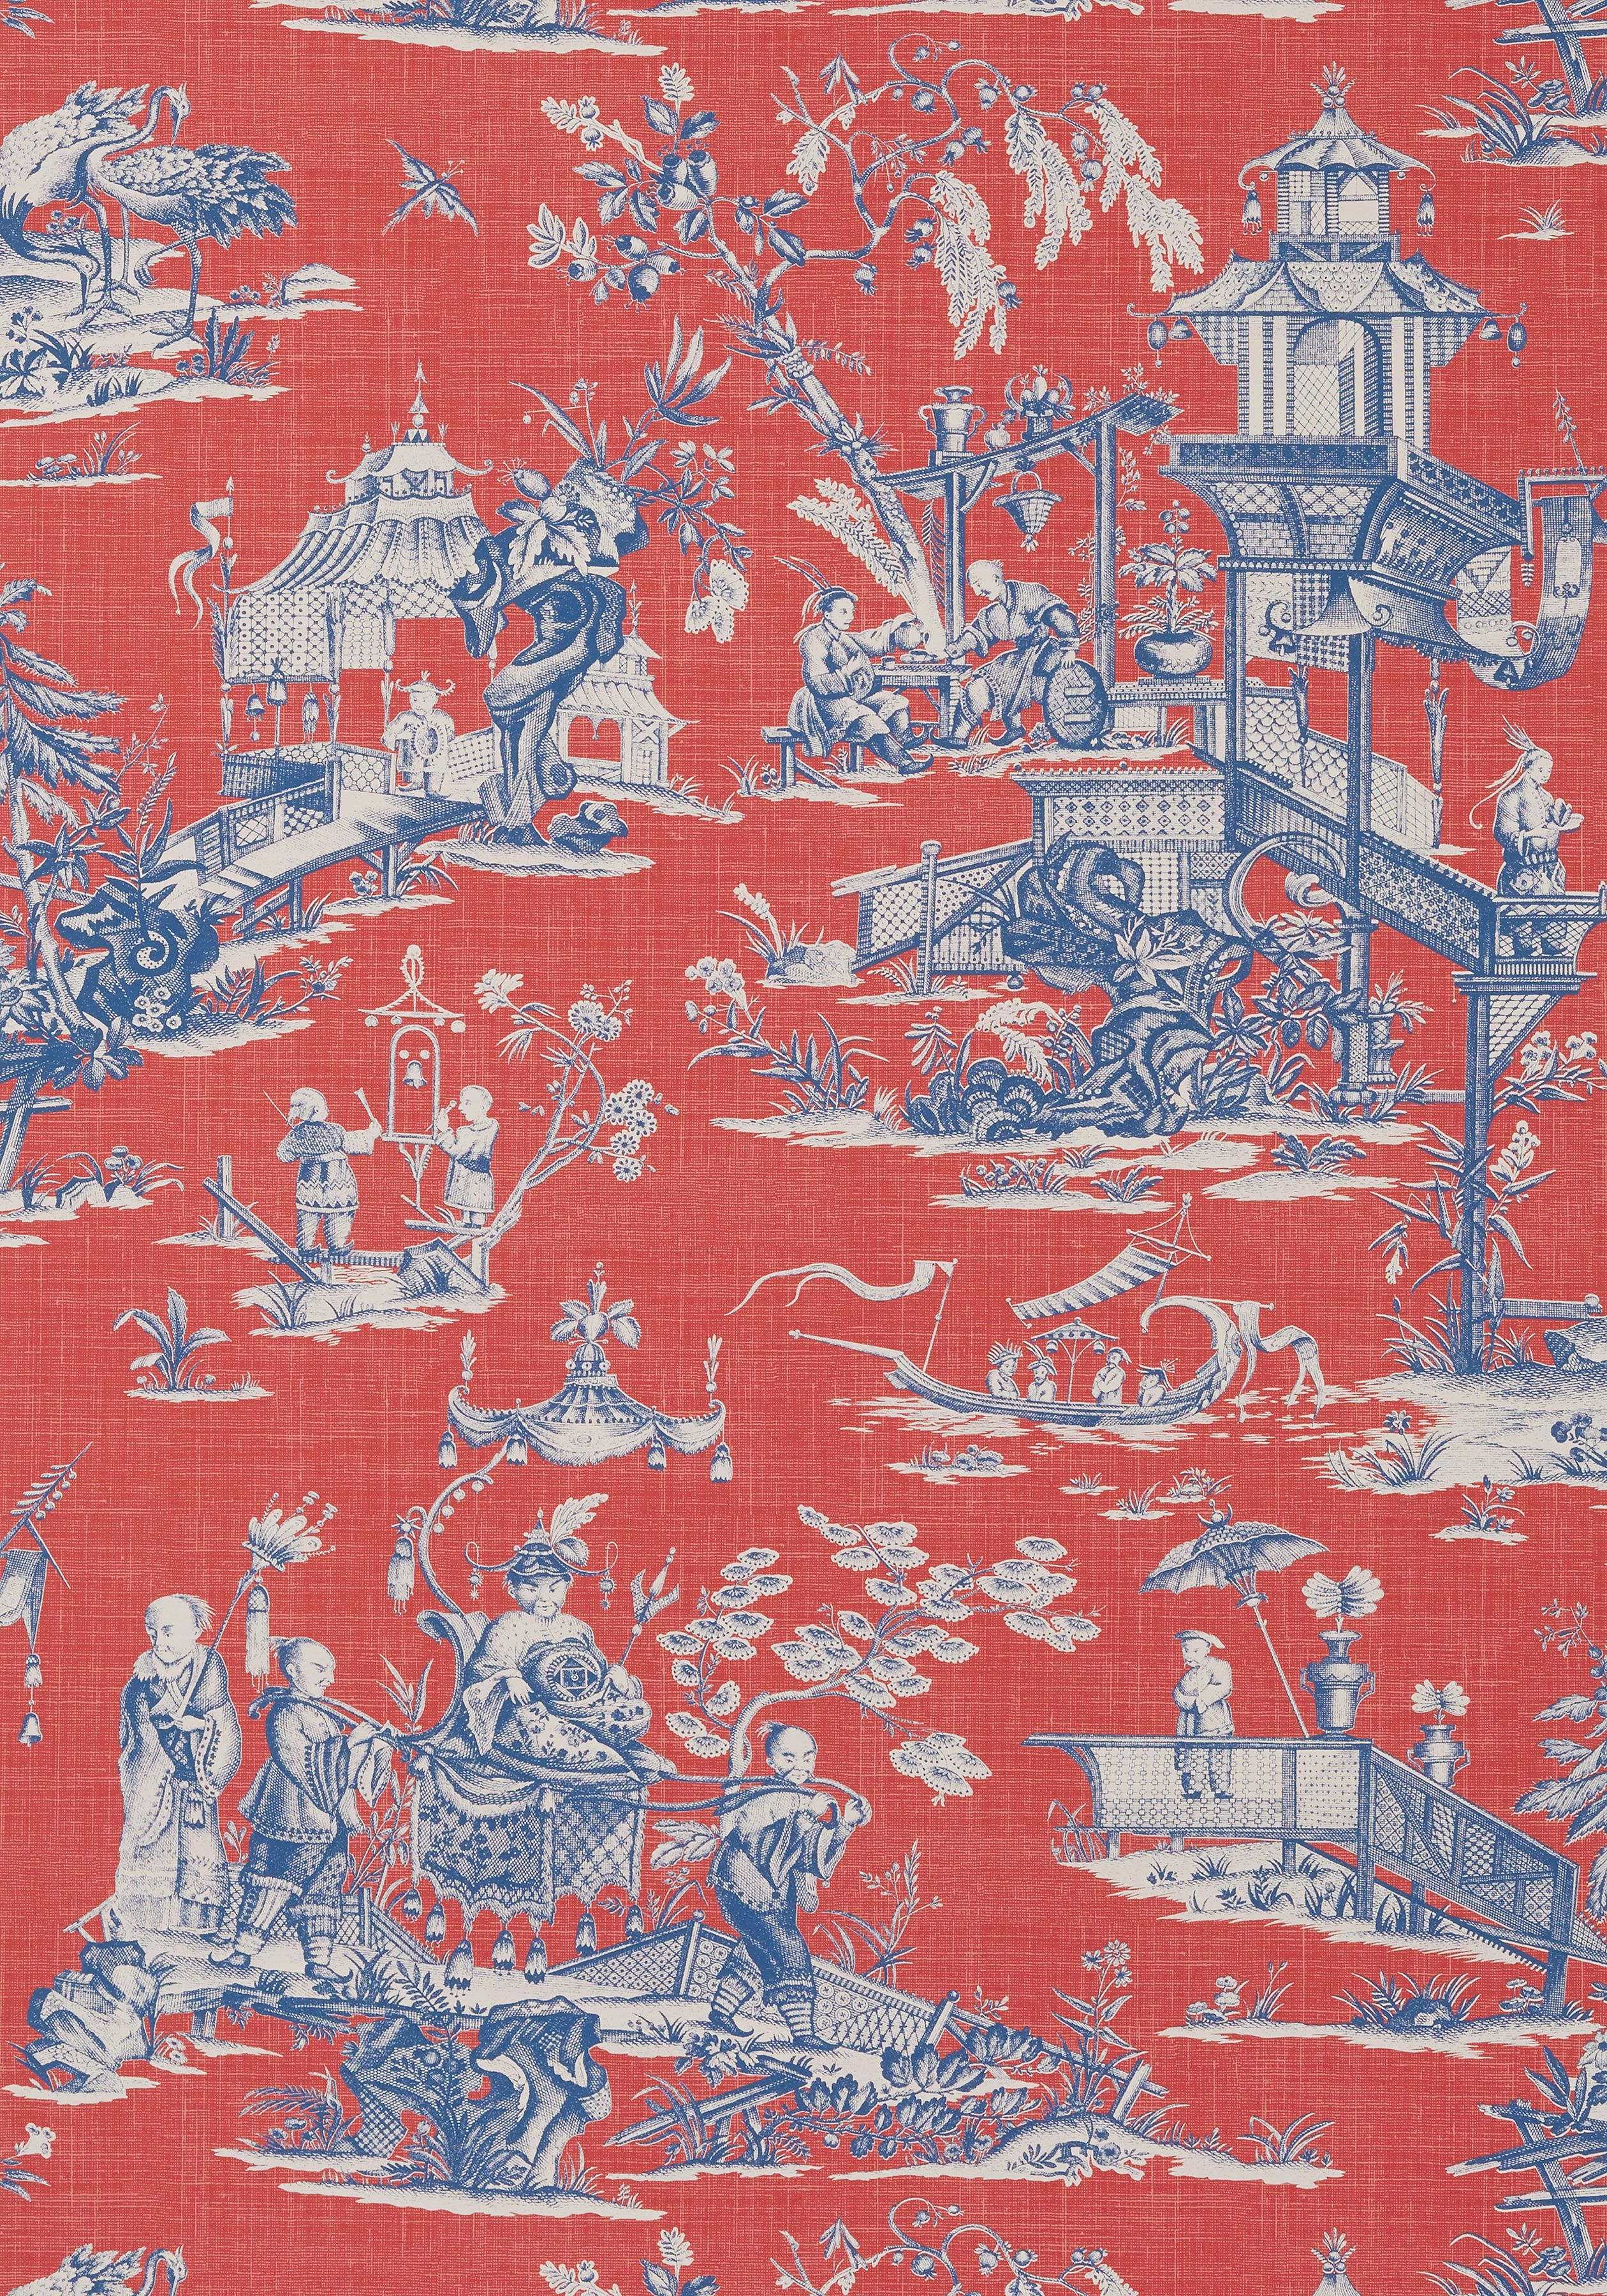 CHENG TOILE, Red and Blue, T75466, Collection Dynasty from